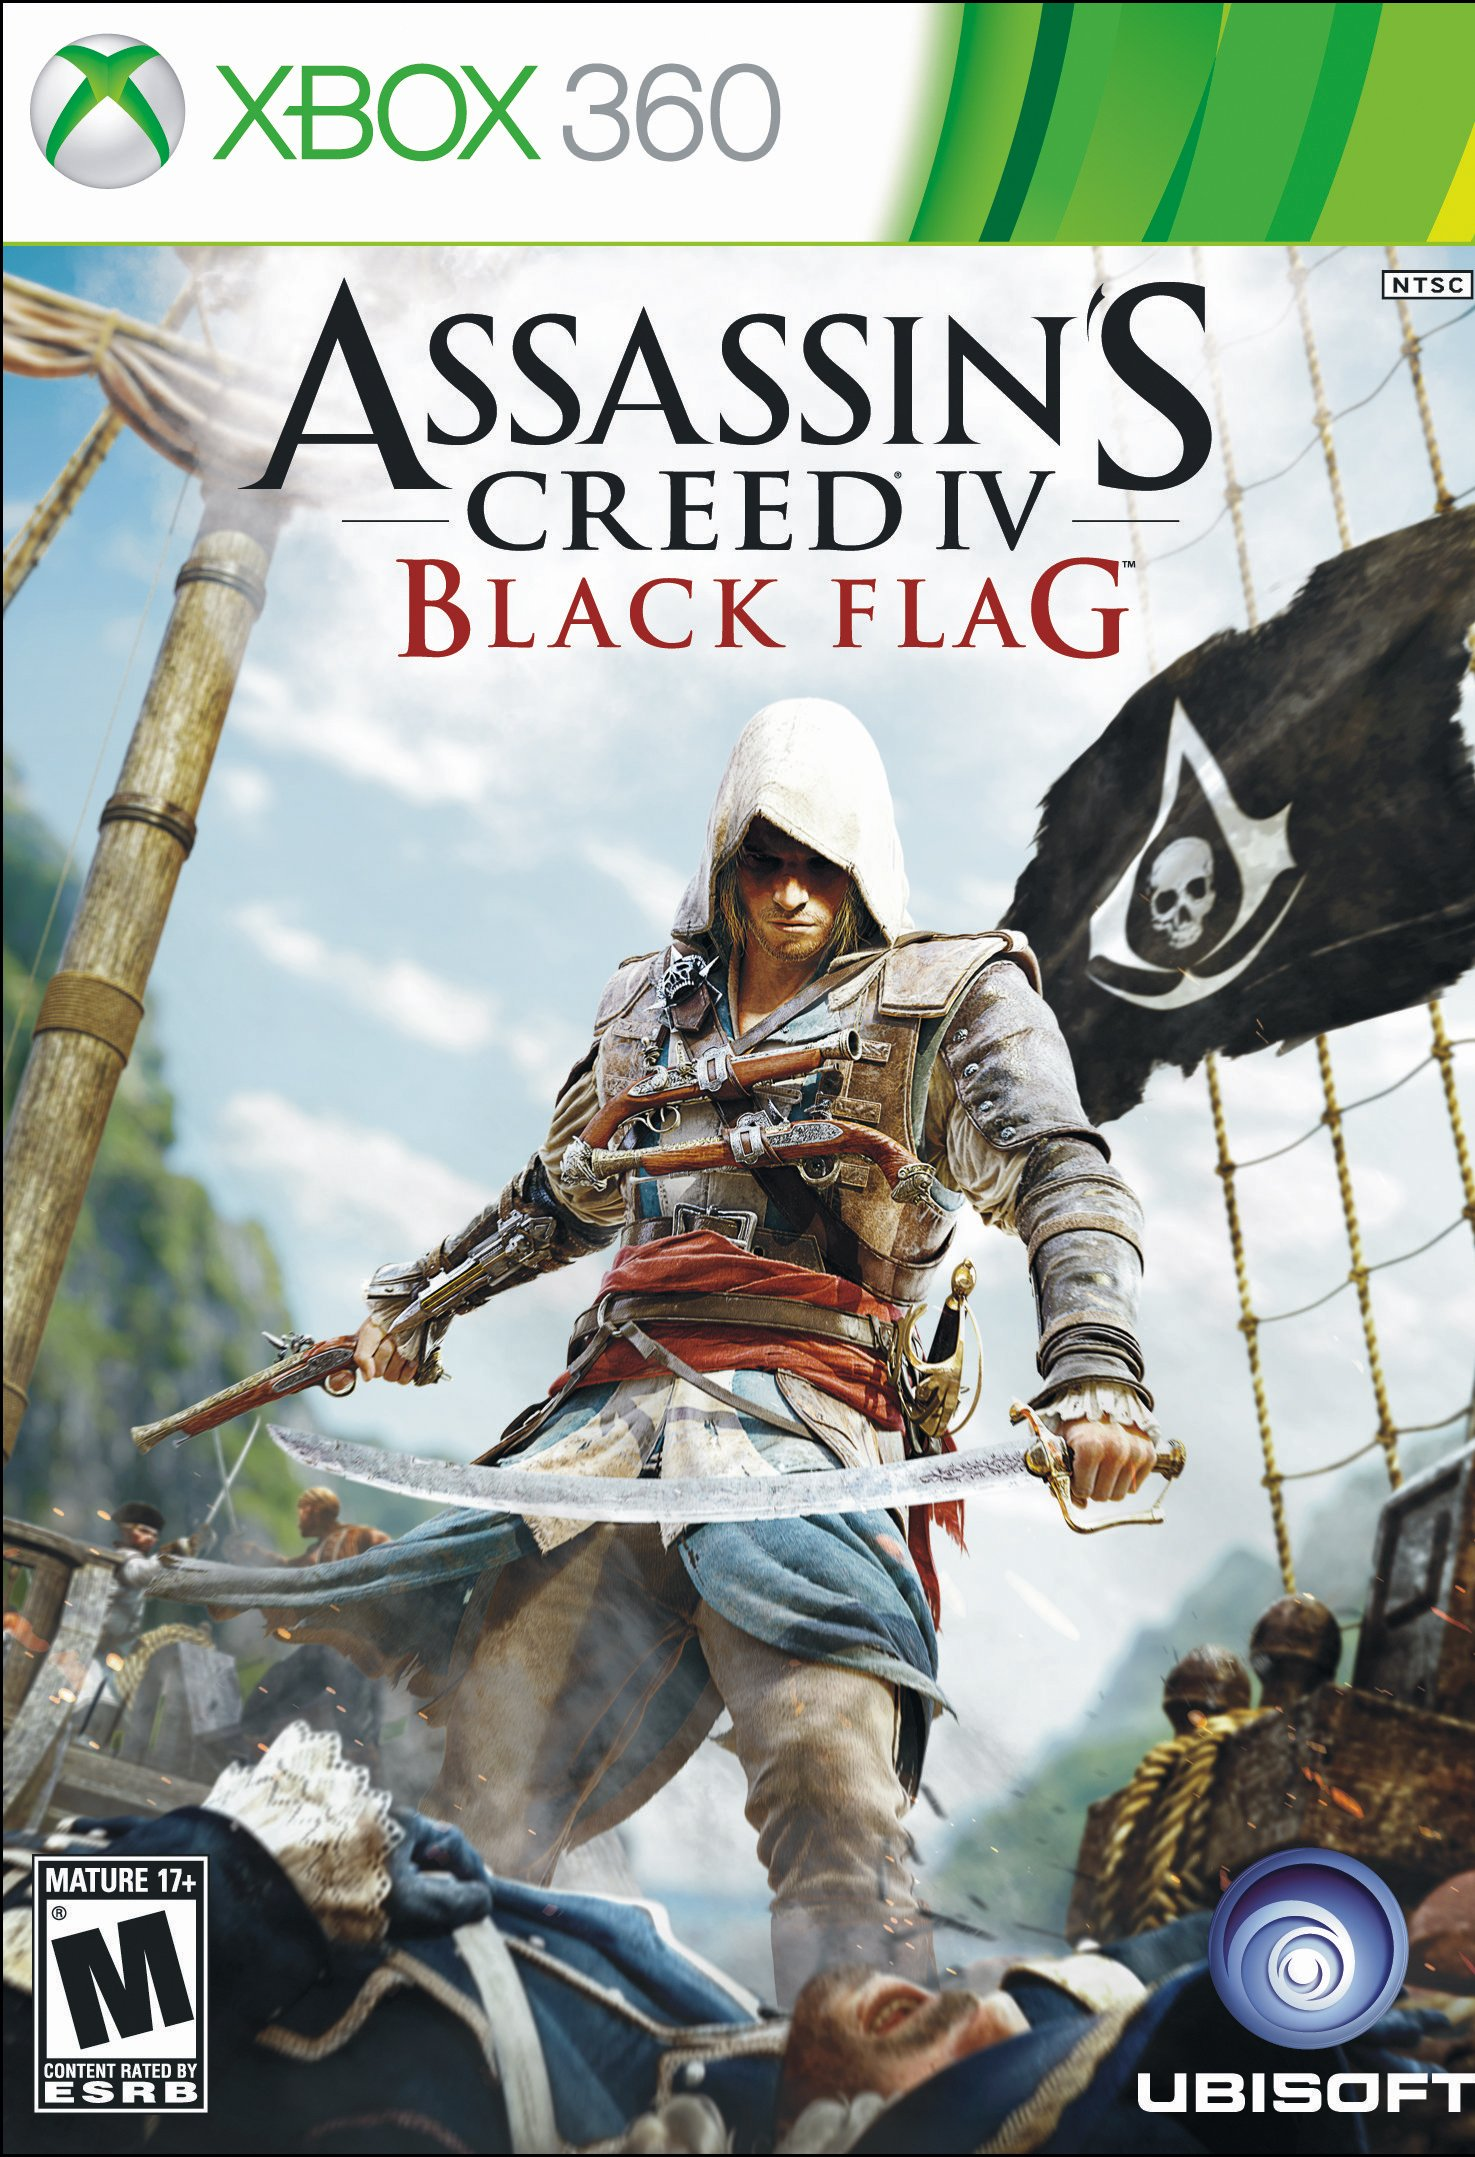 Assassin's Creed IV Black Flag (Xbox 360) product image